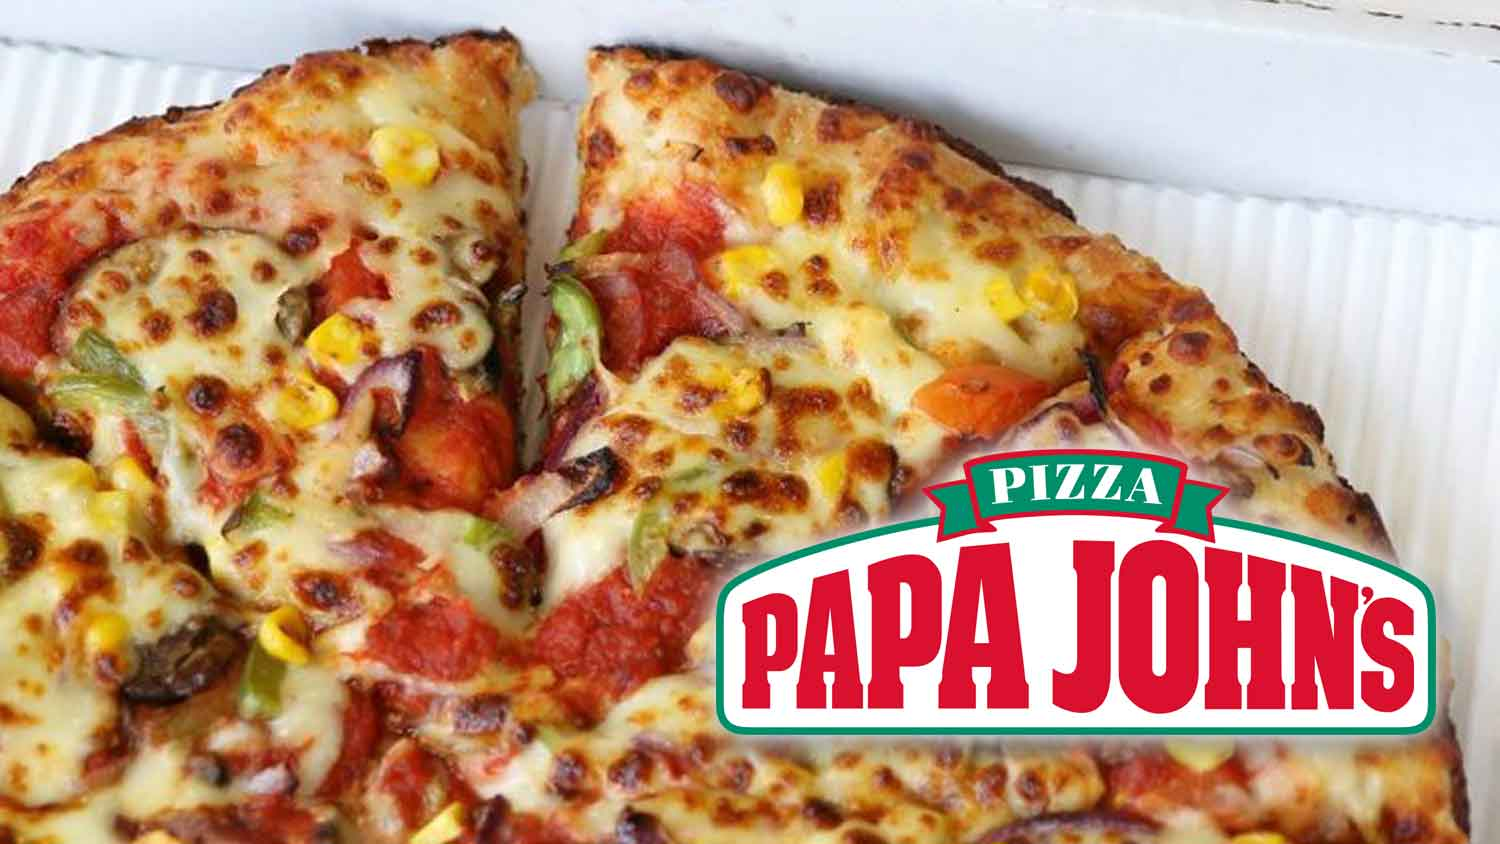 The One Pizza You Should Never Order from Papa John's According to a Former Employee